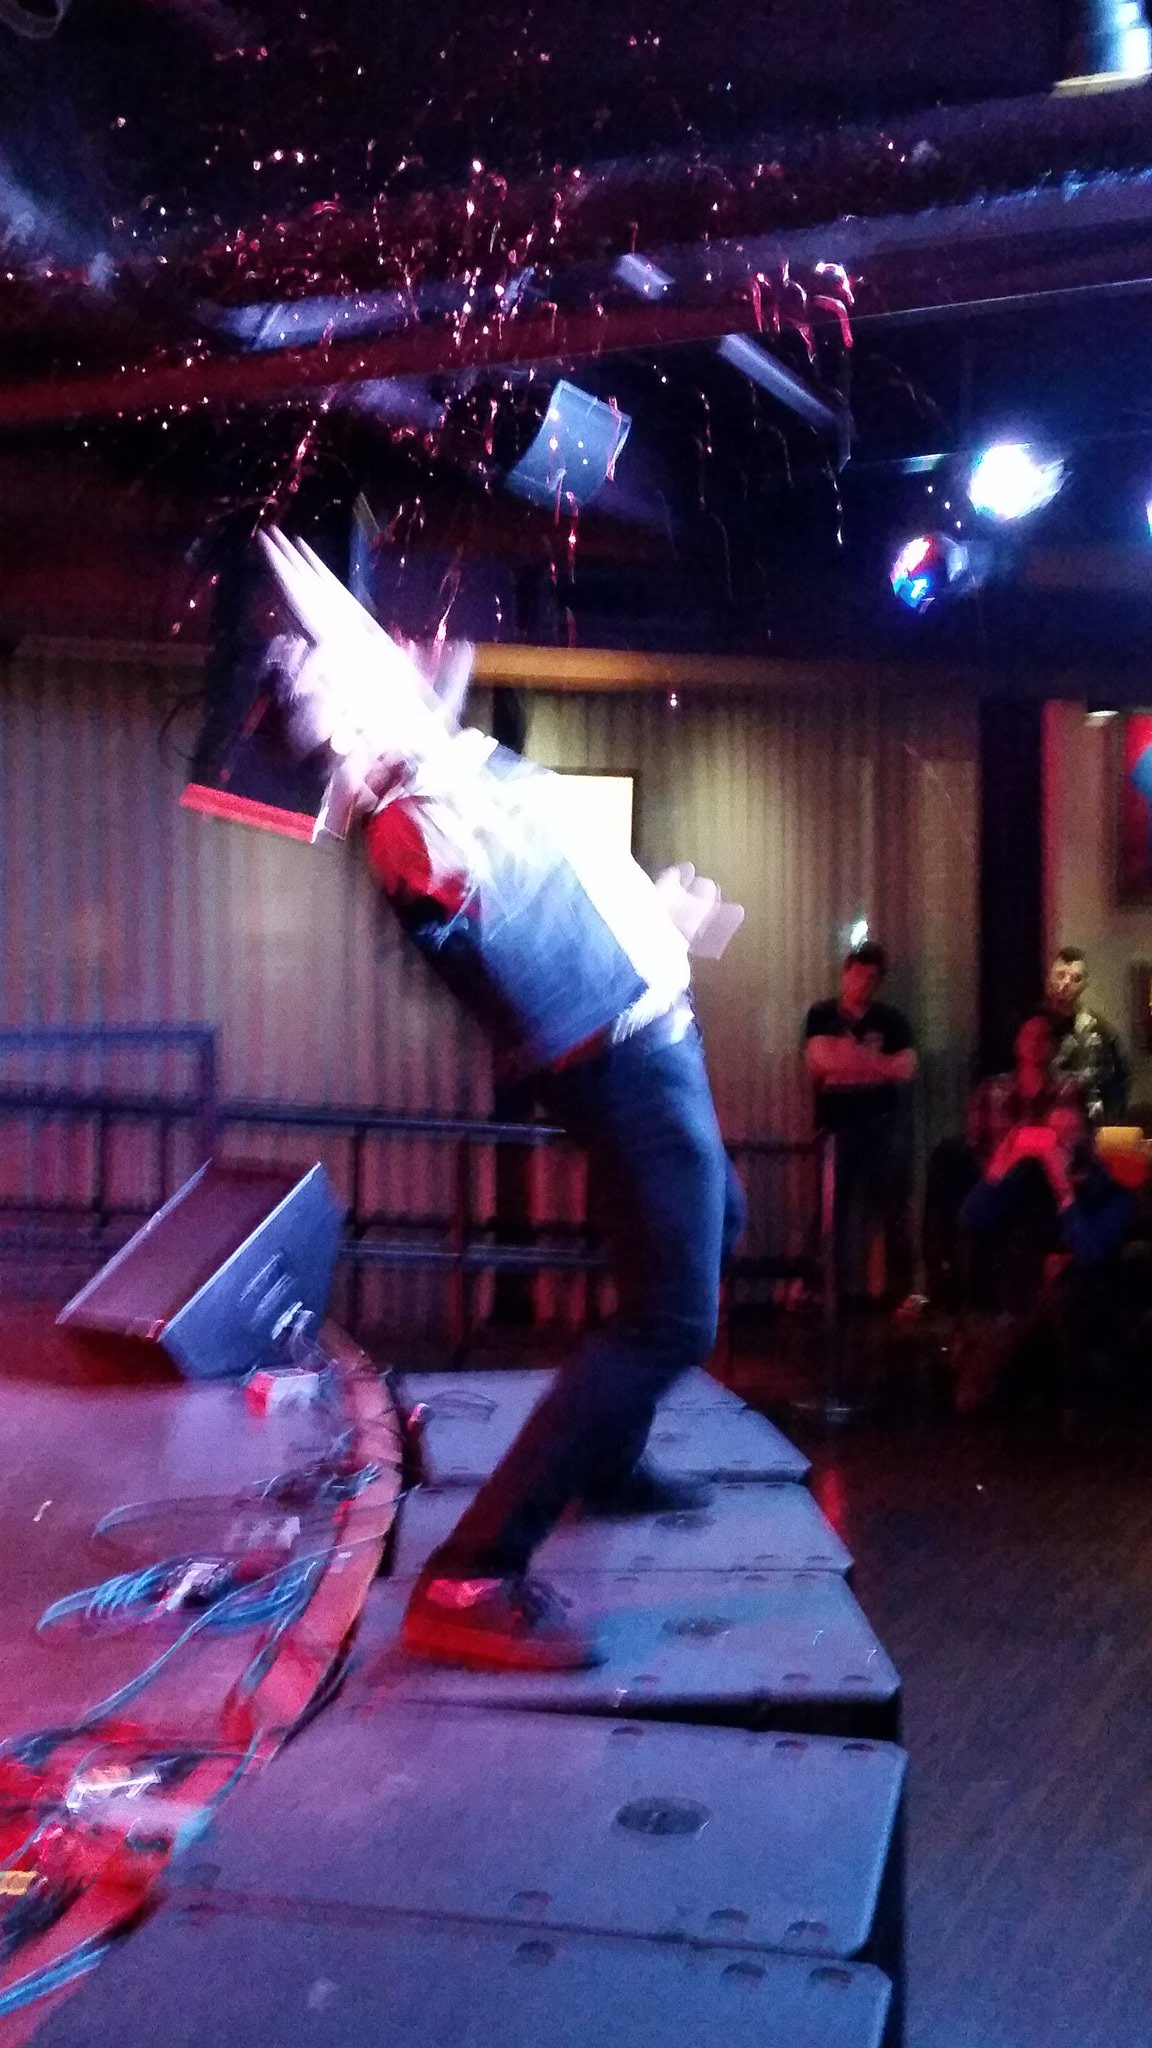 I GOT OP ROCK MID-GLITTER-SPRAY OMG but he got outrageously low scores for going early, oh well #usairguitar https://t.co/fF5Uix1EOw